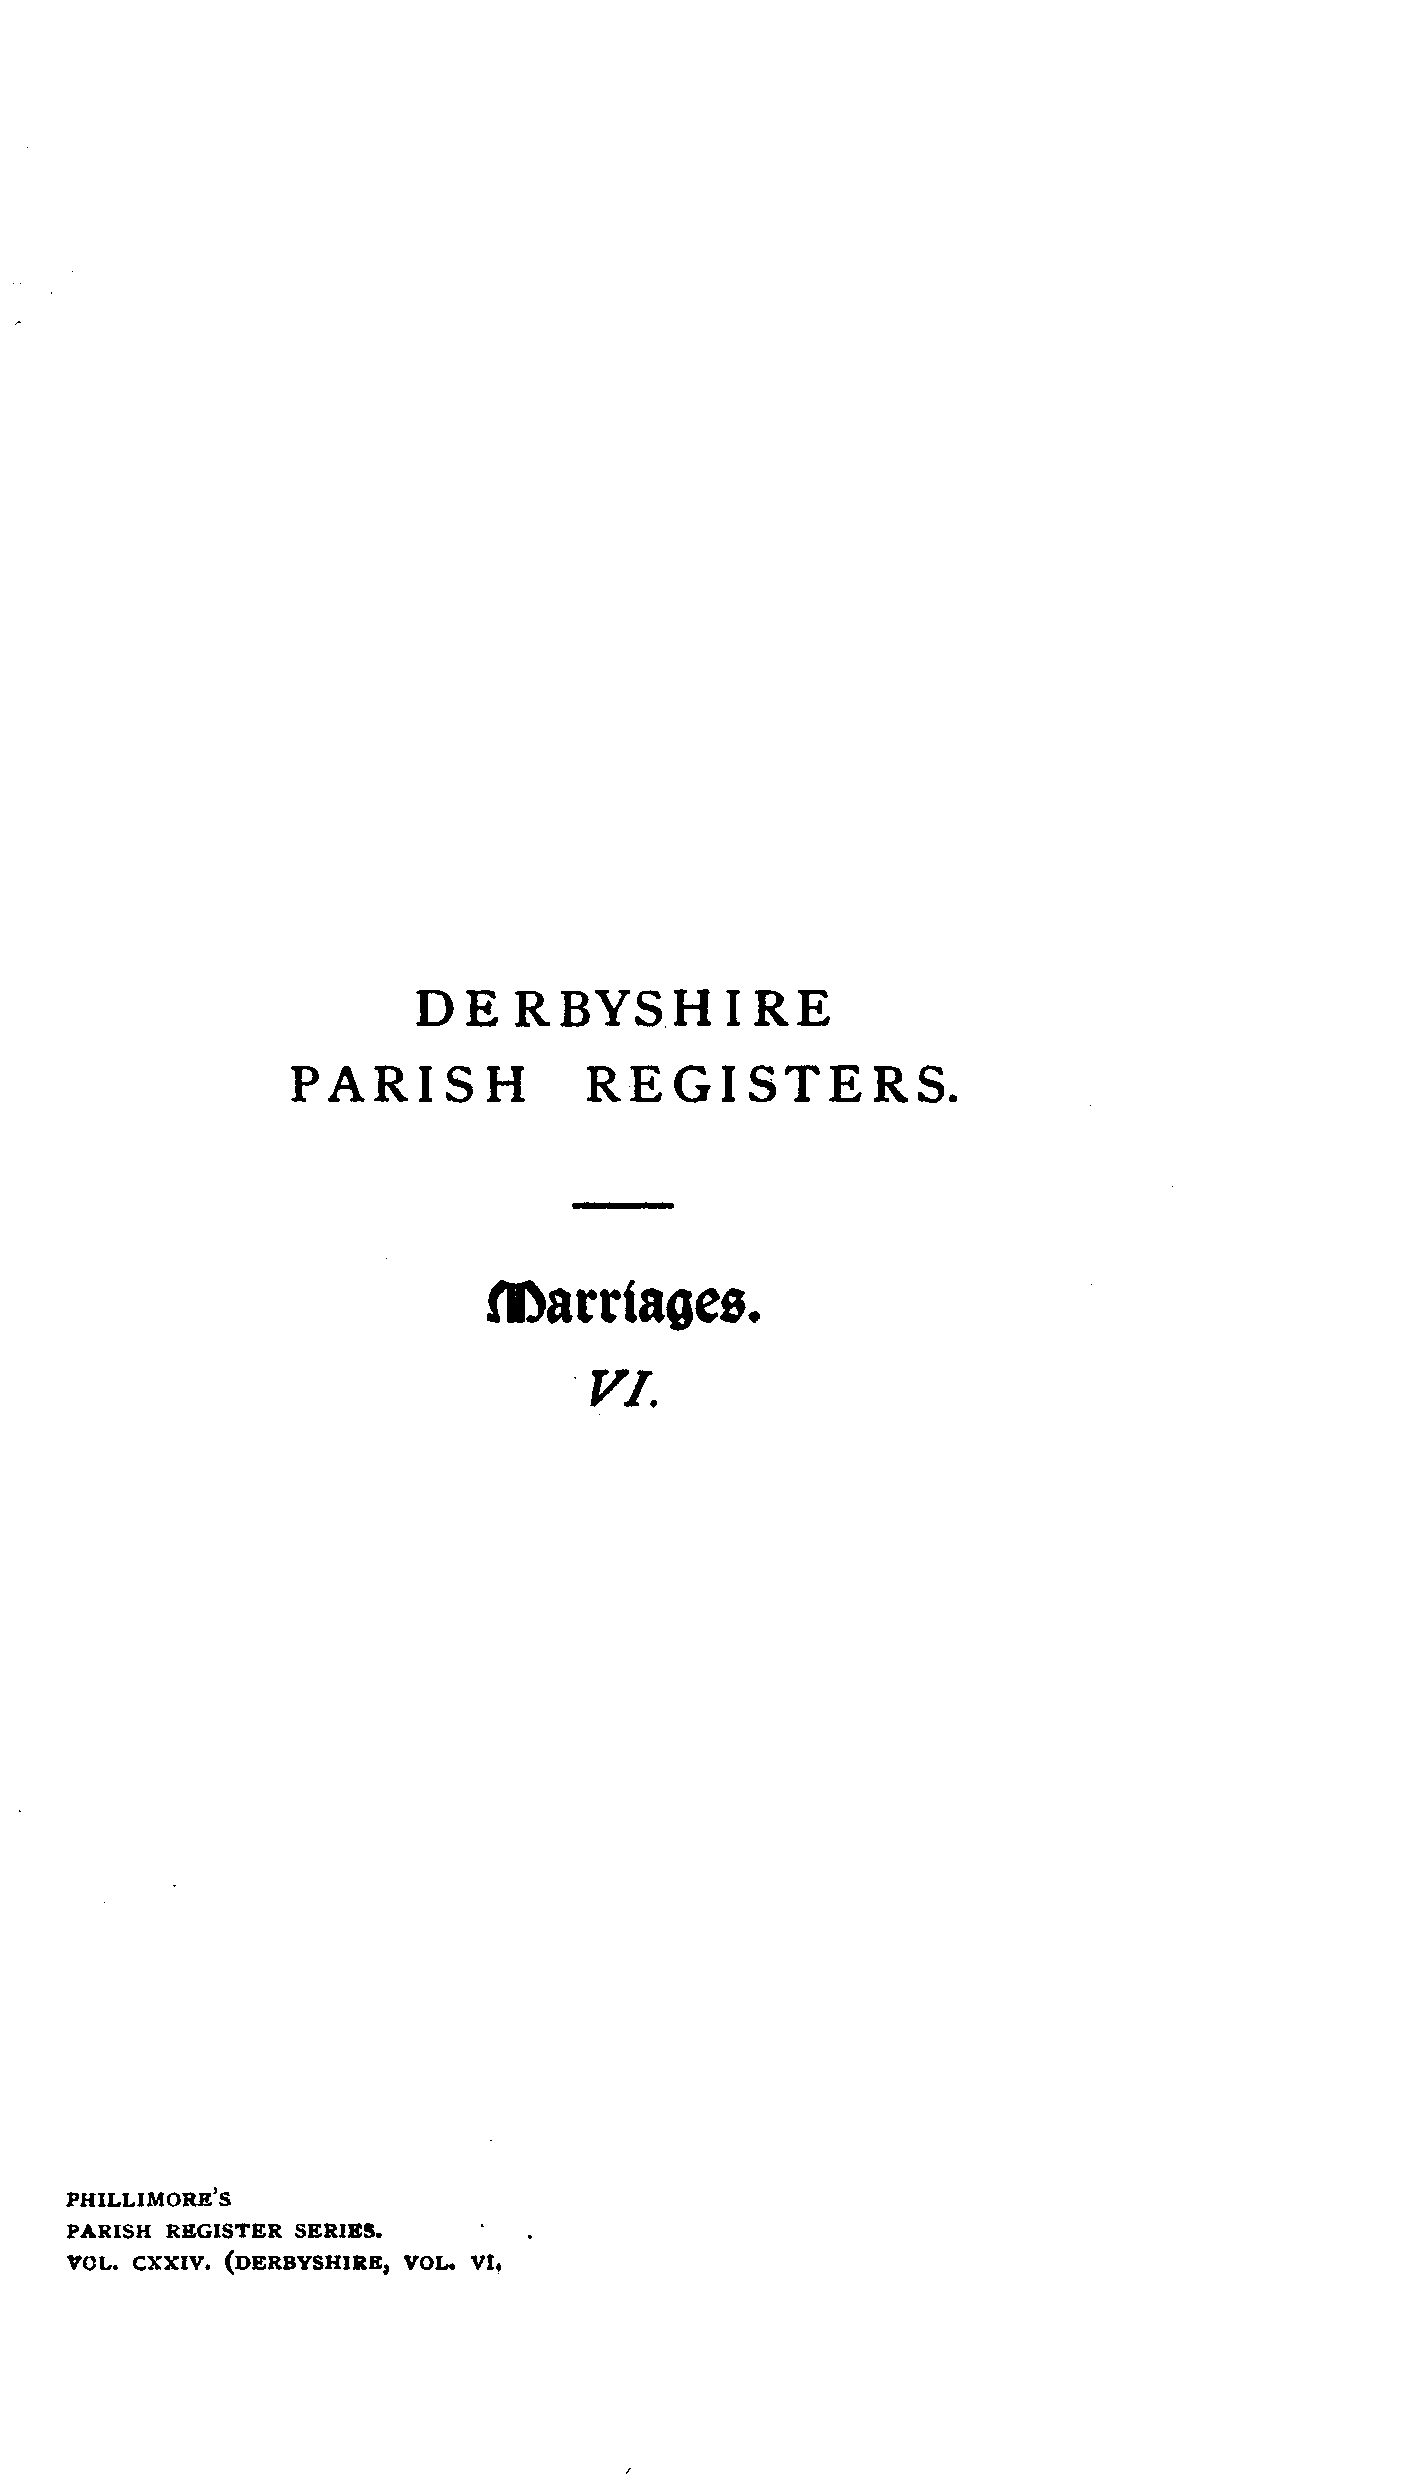 Derbyshire Parish Registers - Marriages volume 6 page i - click to open larger version in a new window